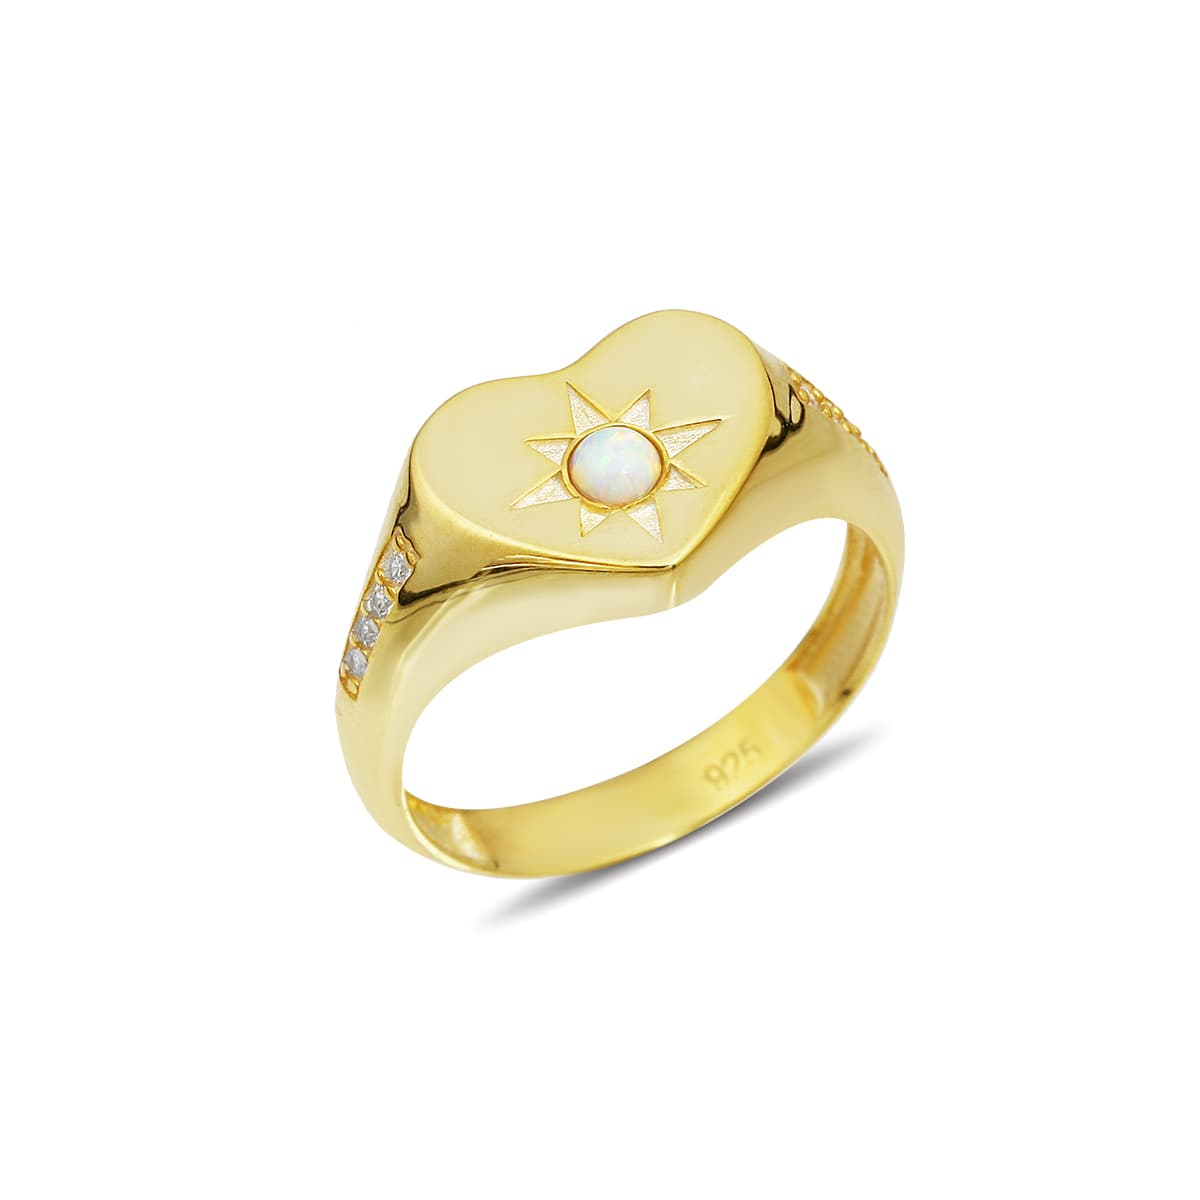 Gold plated stone ring models